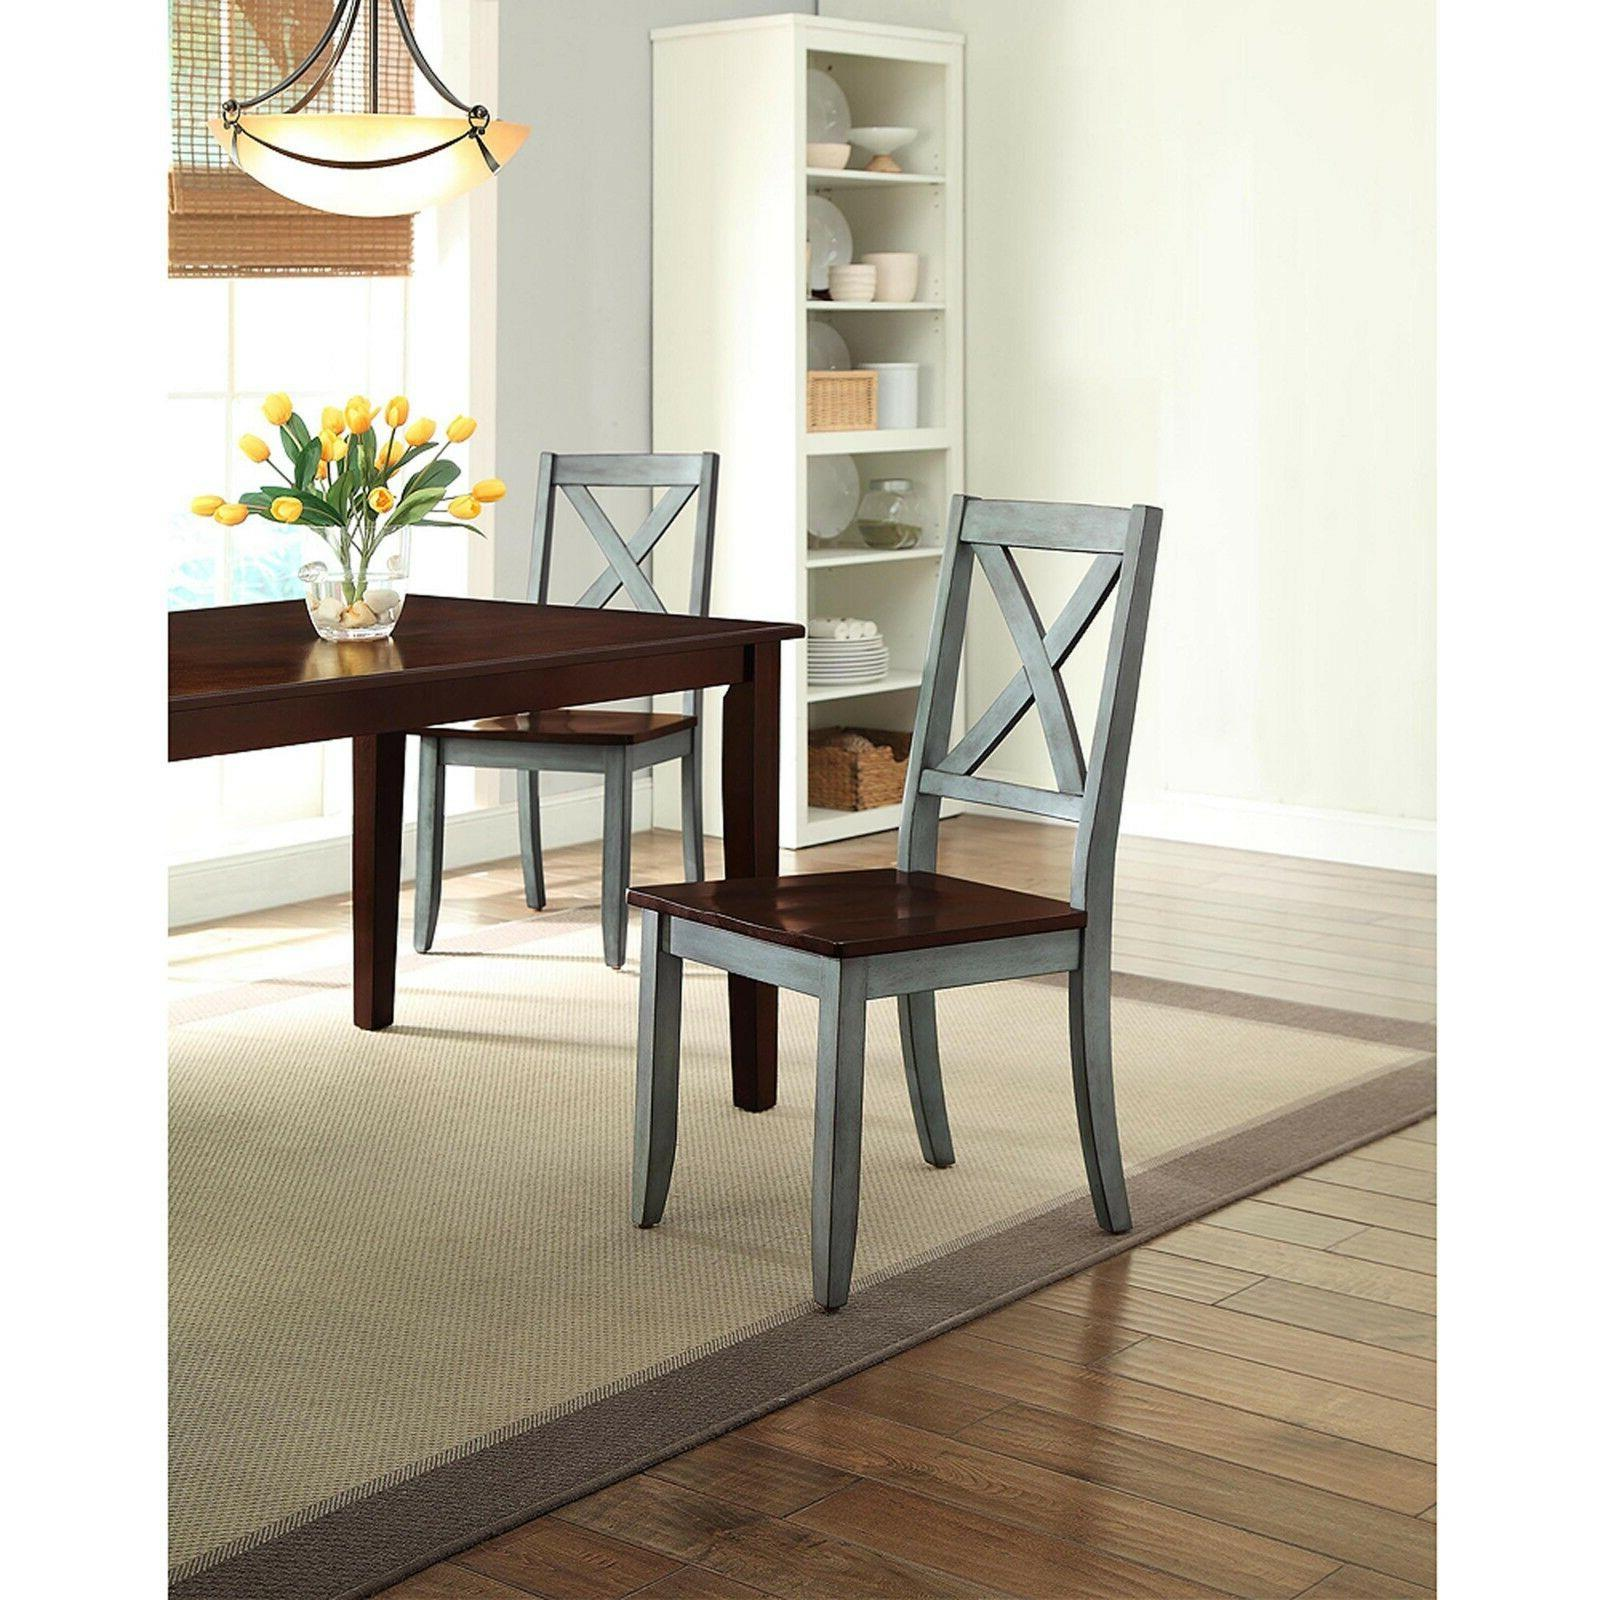 5 Piece Dining Set Kitchen Table Chairs Mocha